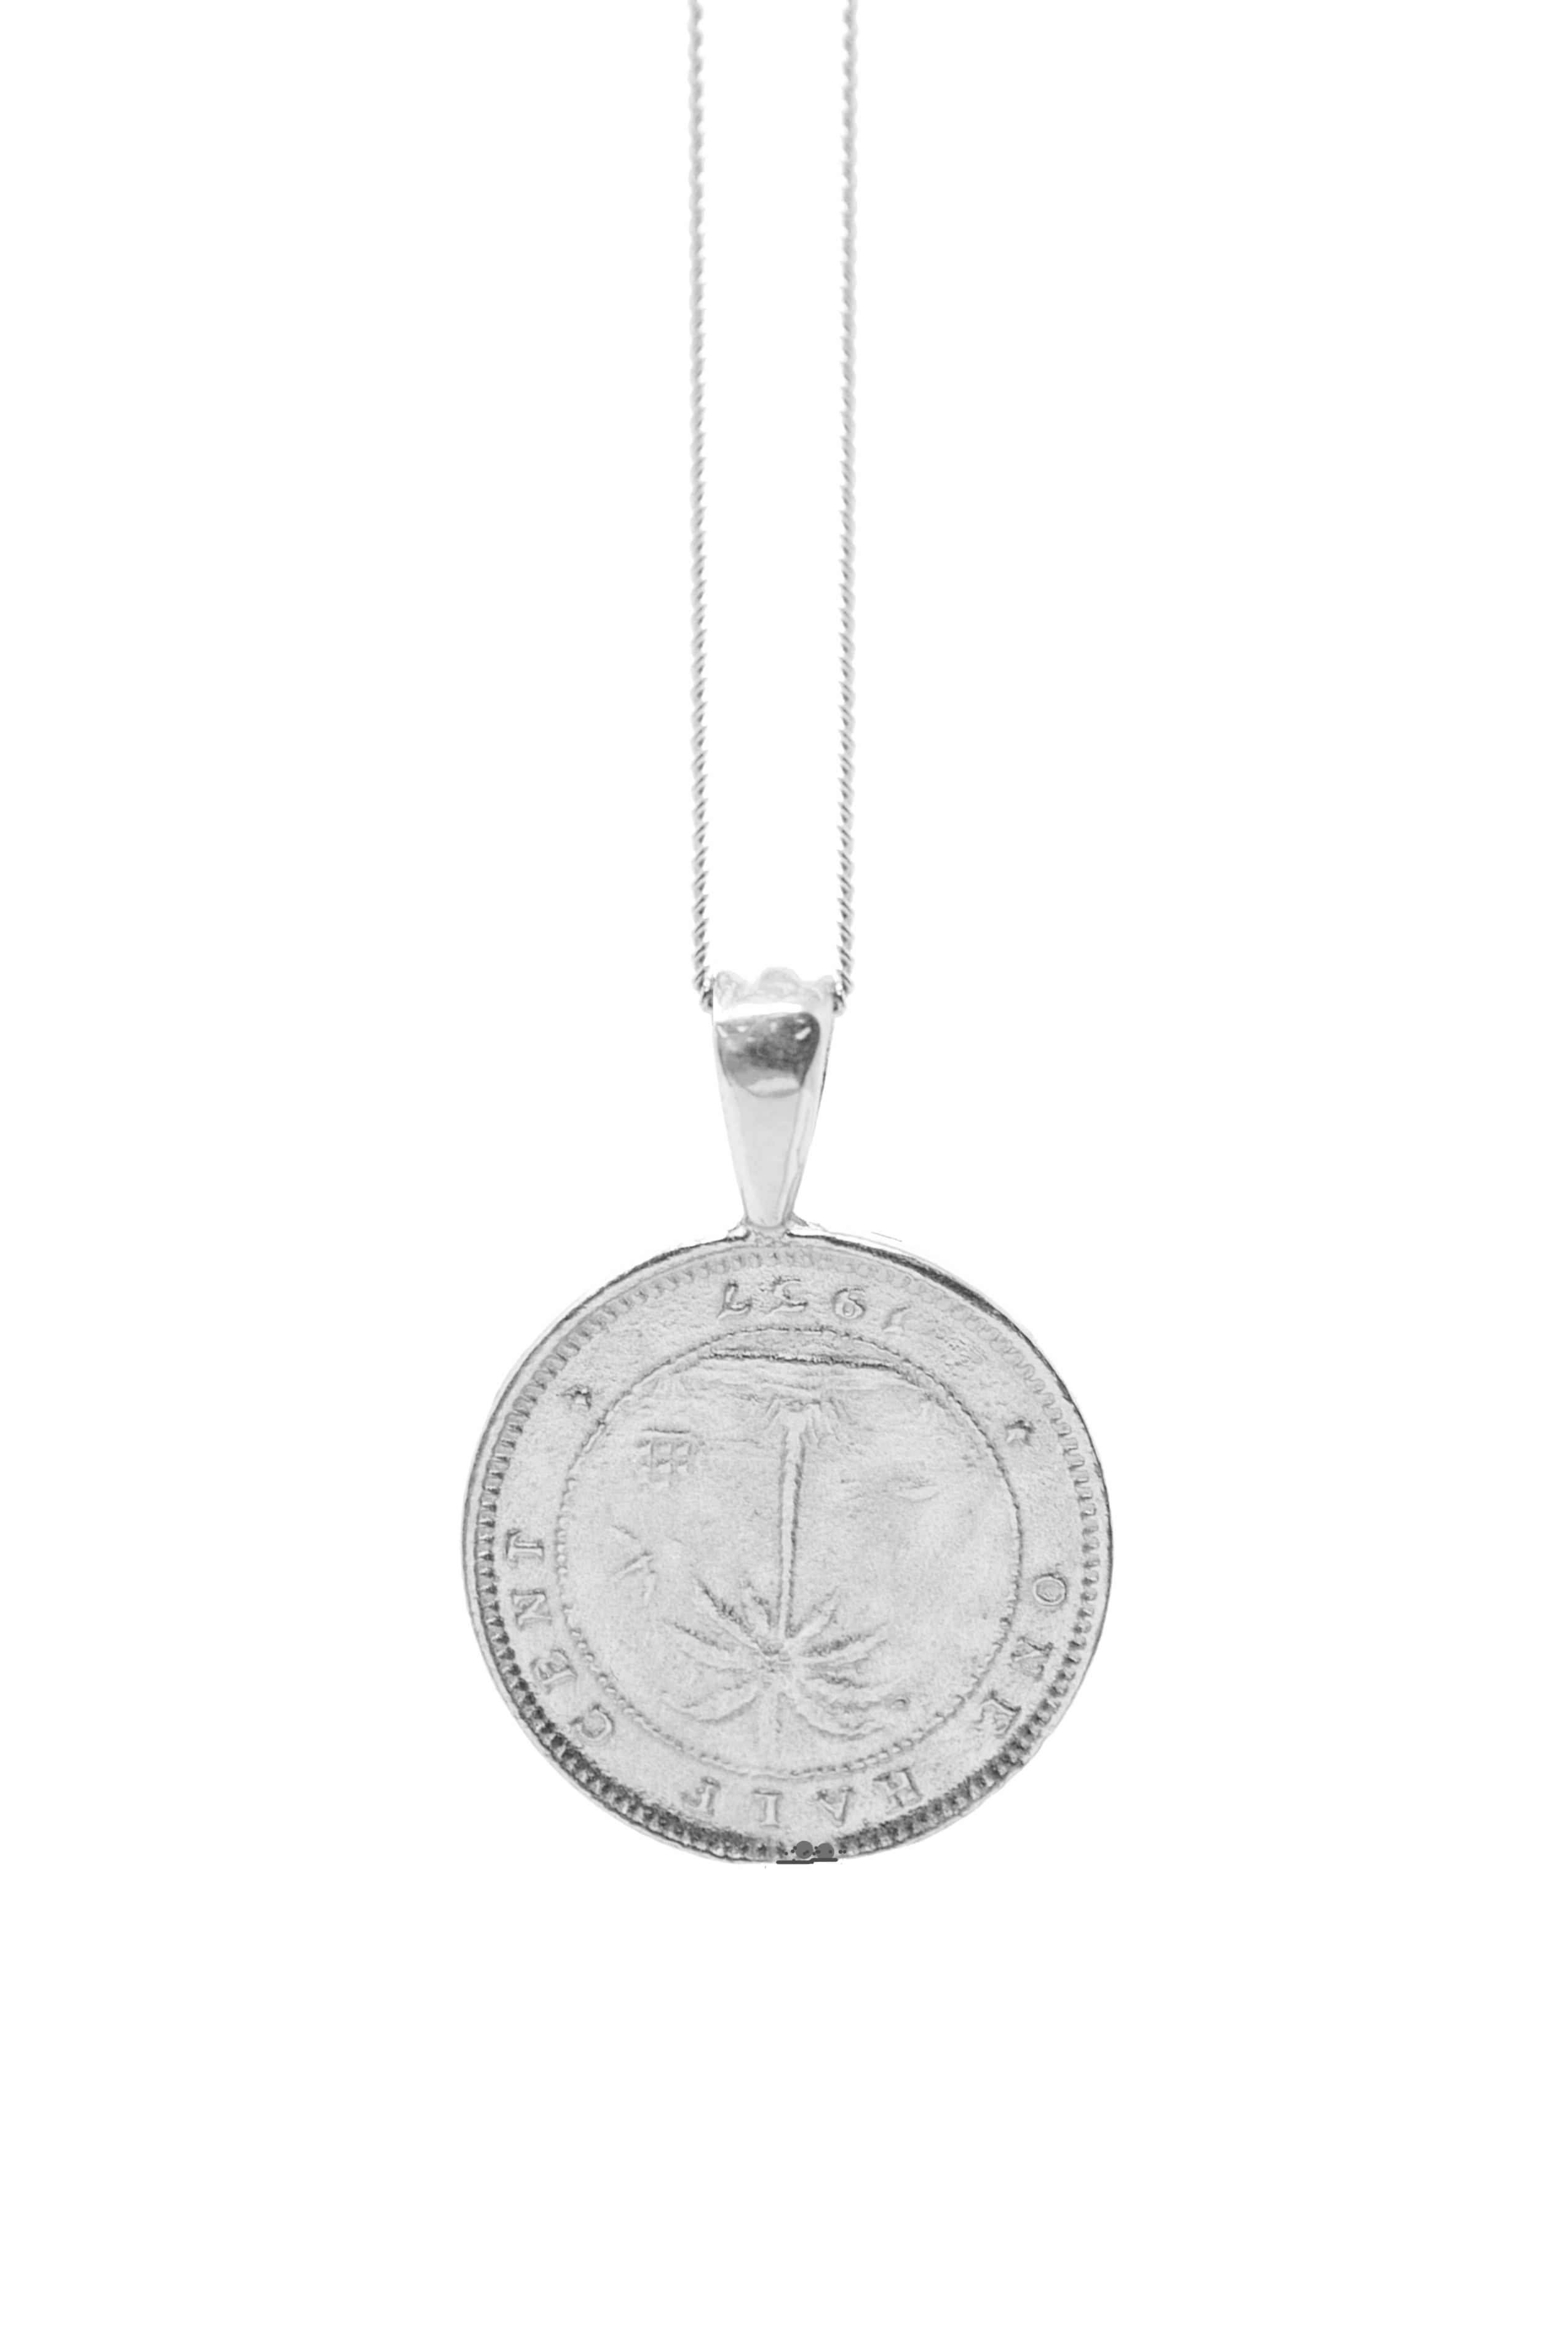 THE LIBERIA Coin Necklace in Silver